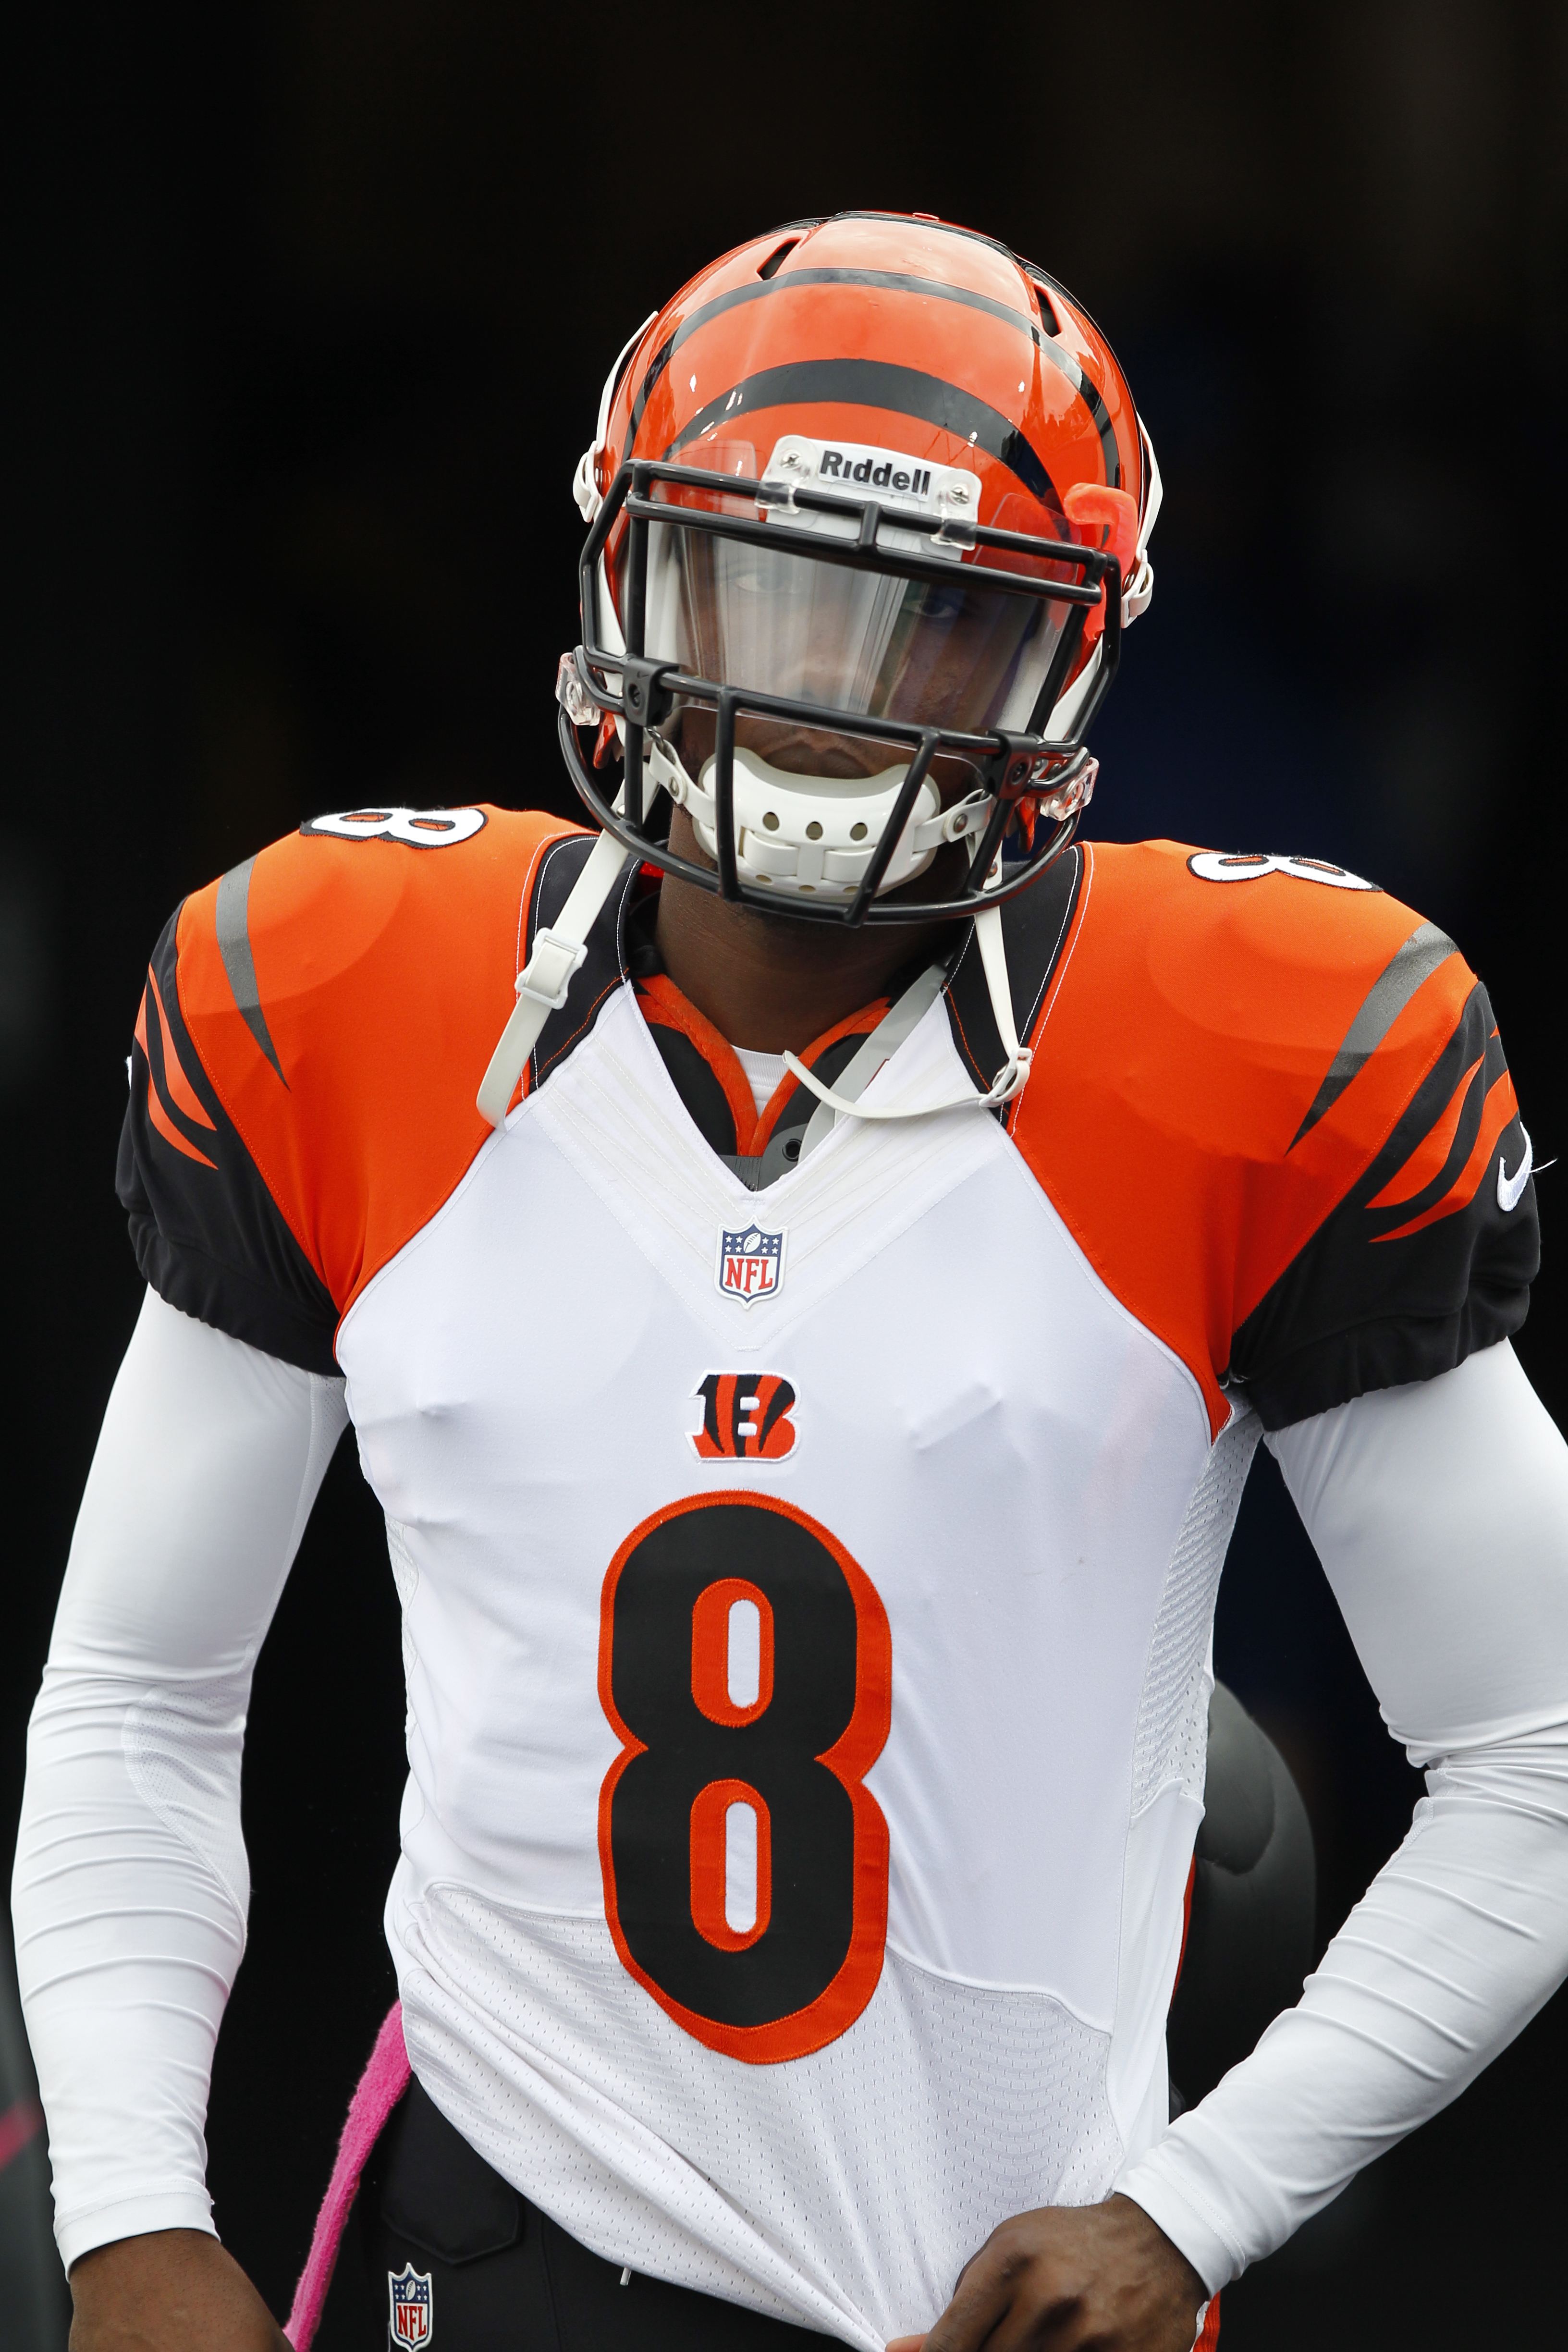 FILE - In this Oct. 13, 2015, file photo, Cincinnati Bengals quarterback Josh Johnson (8) runs onto the field to play against the Buffalo Bills in an NFL football game on in Orchard Park, N.Y. Johnson, now with the Bills, lives in the have-arm-will-travel